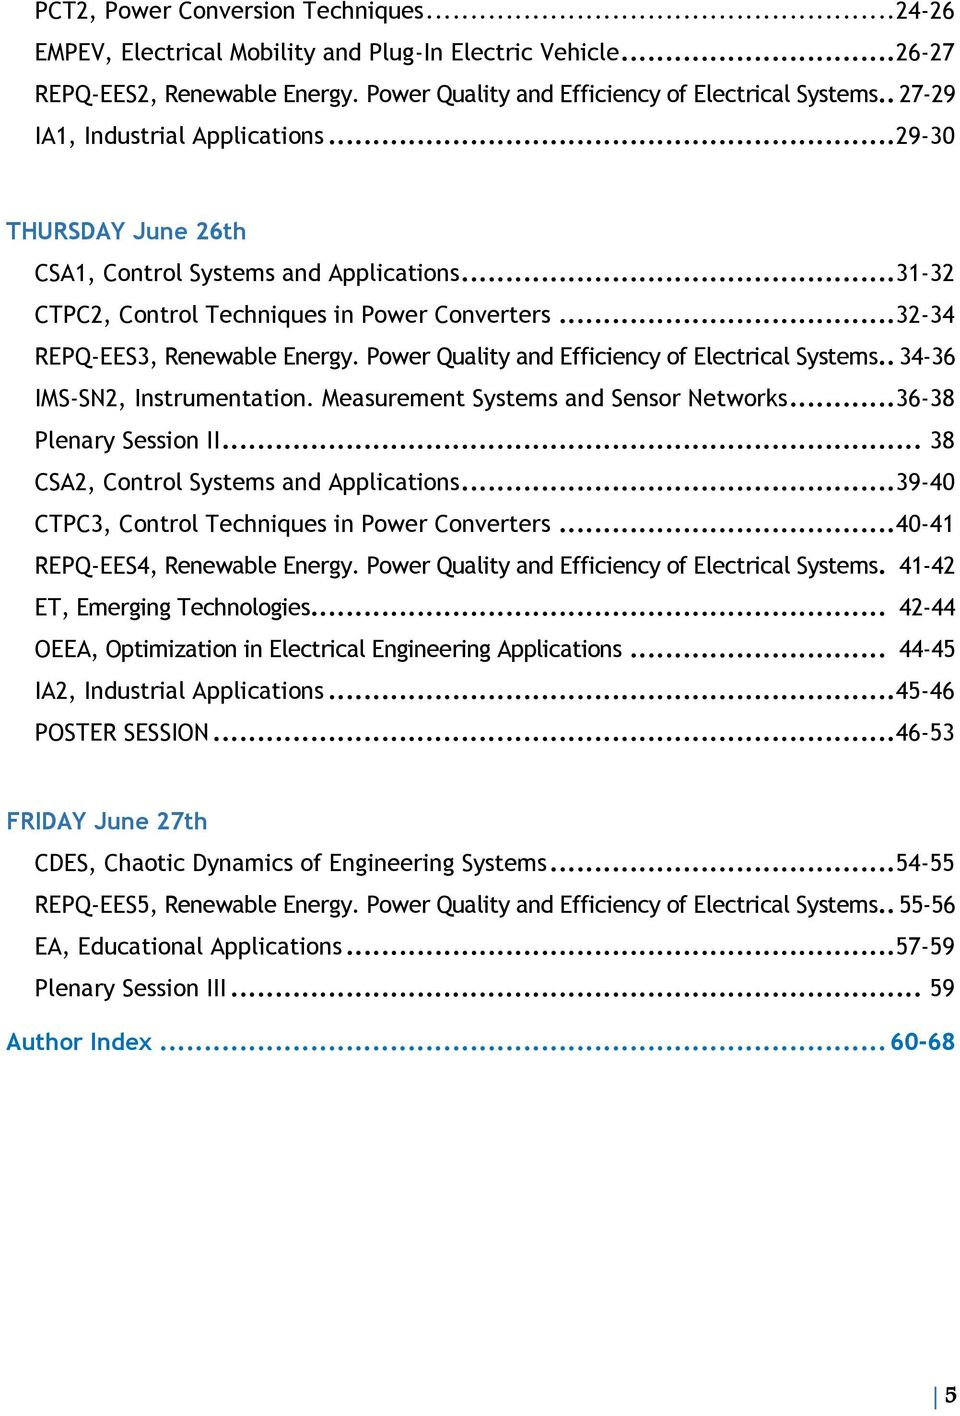 Power Quality and Efficiency of Electrical Systems.. 34-36 IMS-SN2, Instrumentation. Measurement Systems and Sensor Networks... 36-38 Plenary Session II... 38 CSA2, Control Systems and Applications.